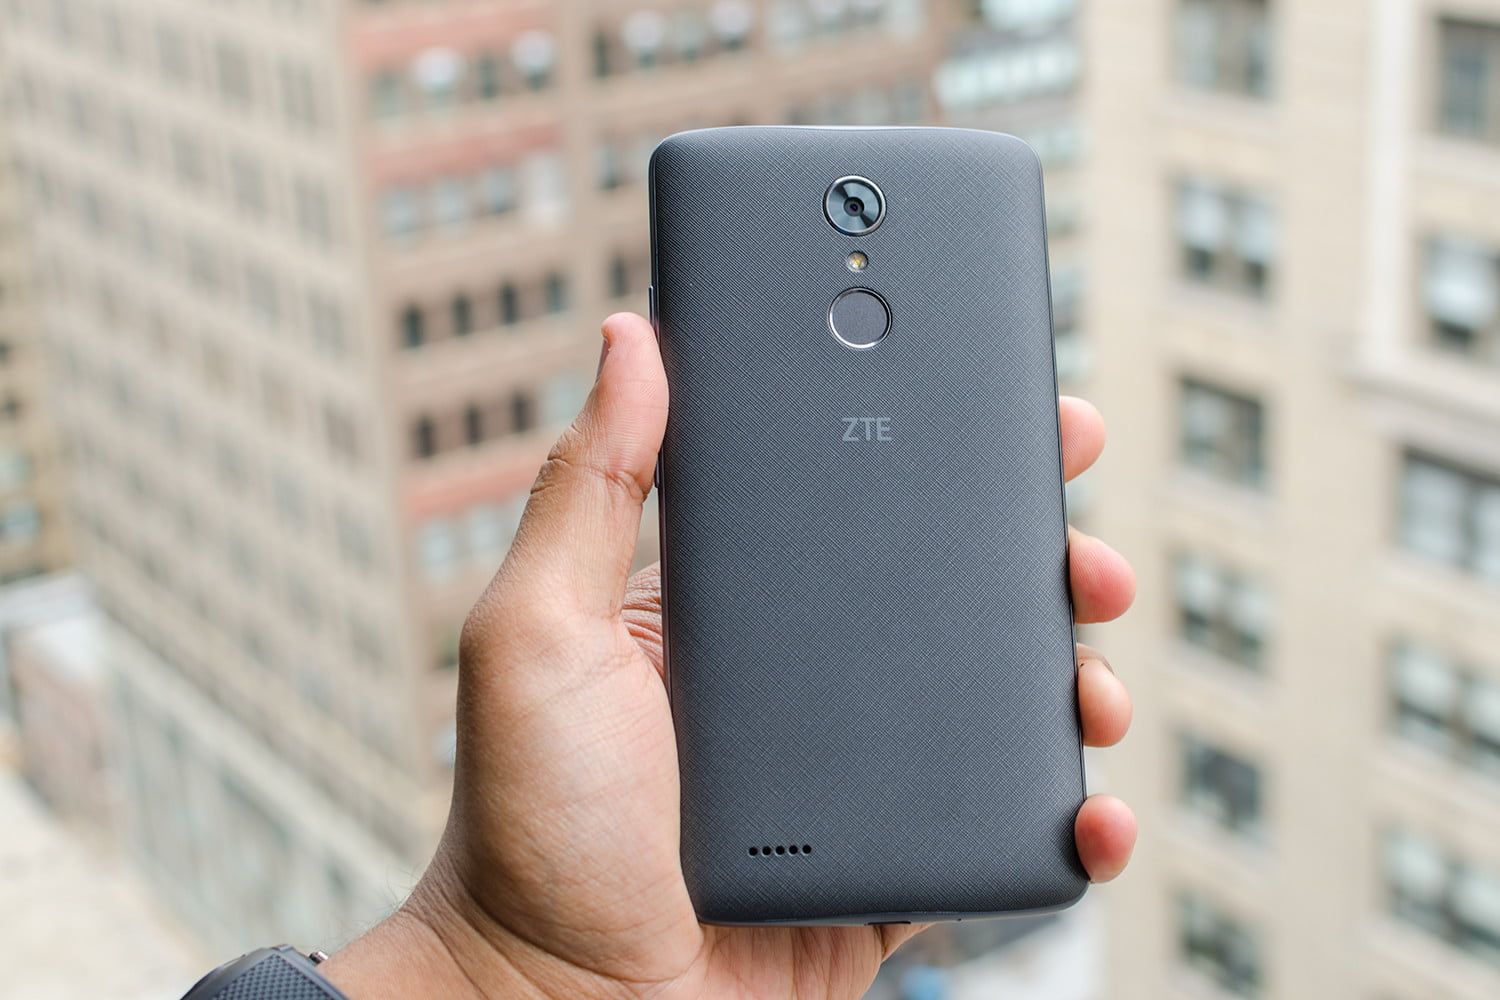 ZTE Max XL Review: It's a Big Phone for $100, But it